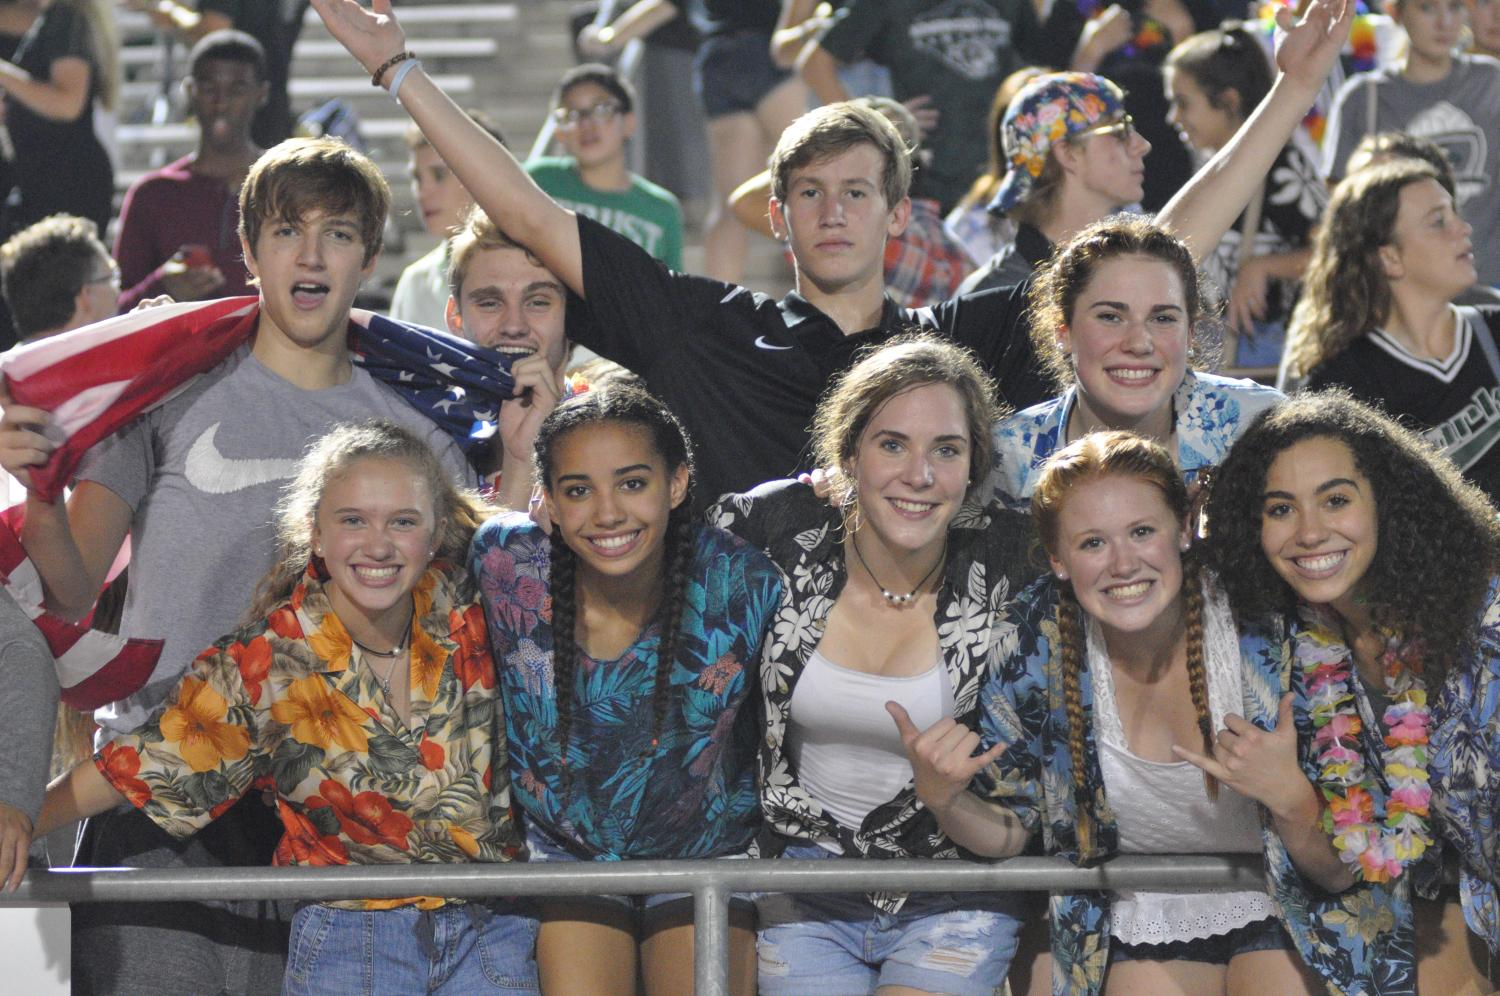 Students pose for a photo at the football game against Barbers Hill on Sept. 22